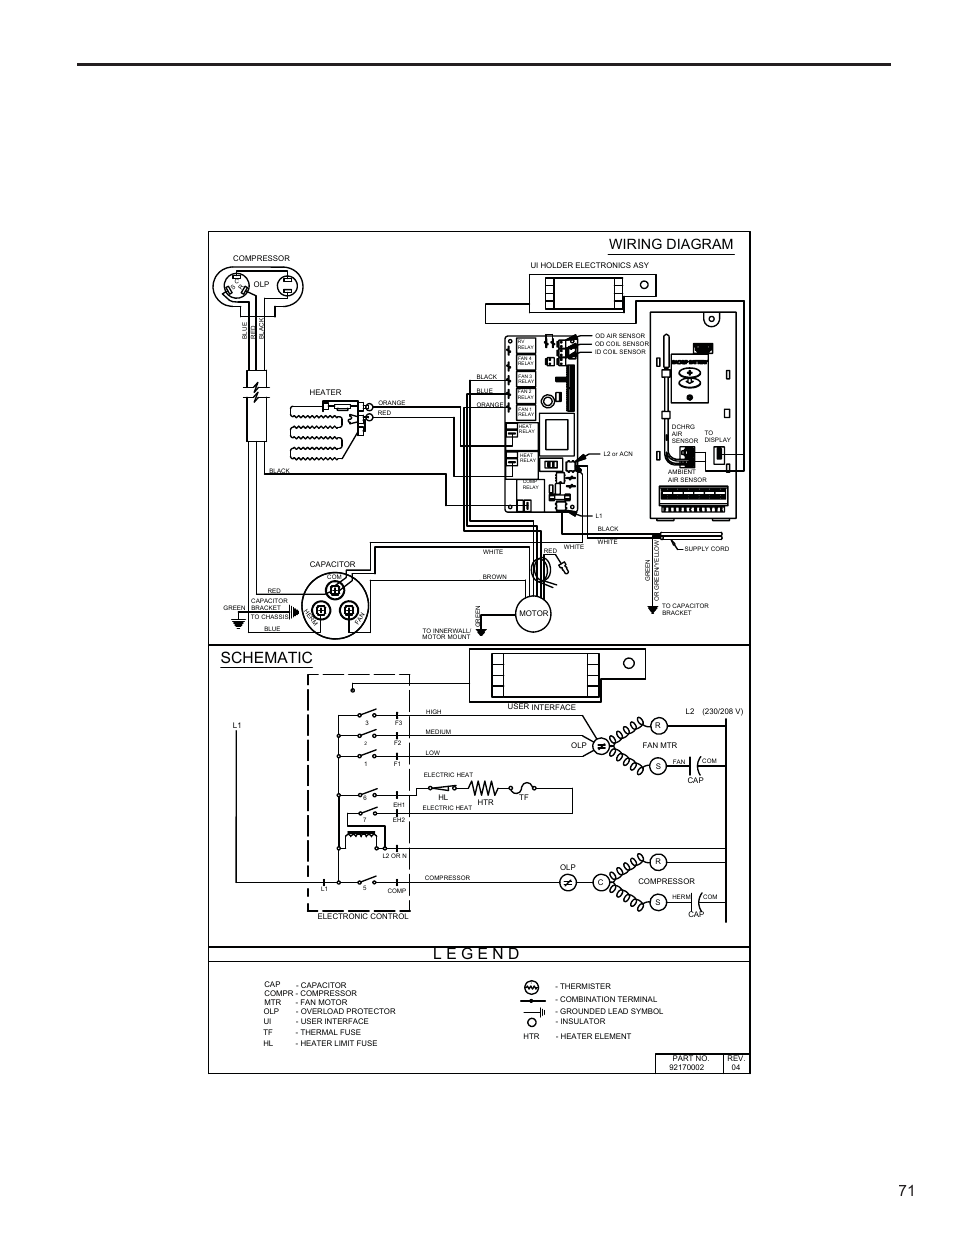 schematic wiring diagram friedrich kuhl r 410a user manual page rh manualsdir com Lennox XC21 Wiring-Diagram Trane Heat Pump Wiring Diagram